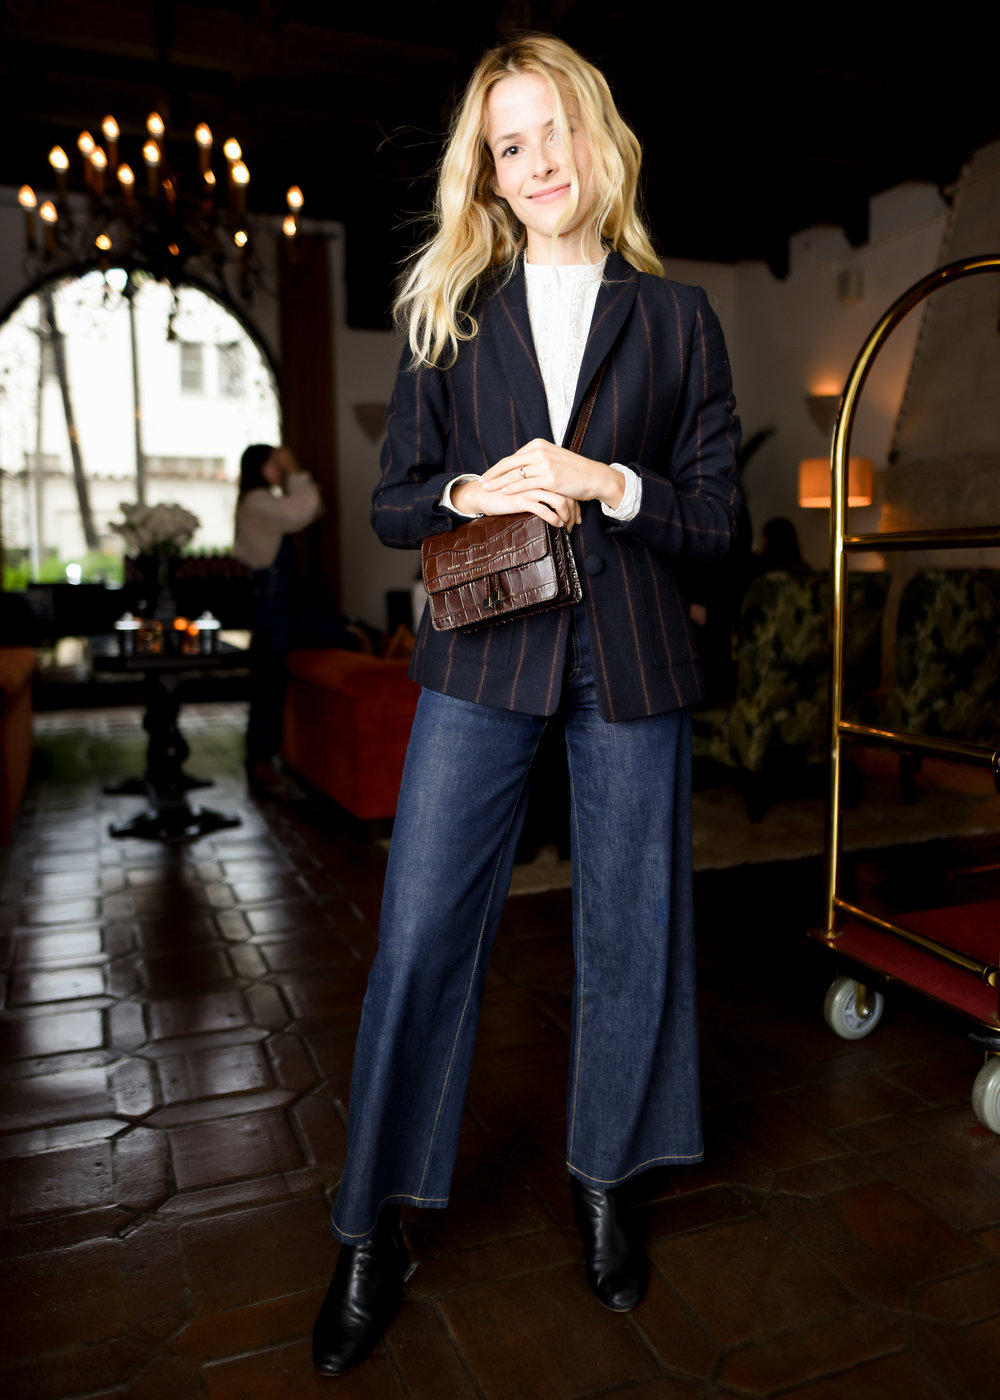 Alex Noiret in the  Charlotte Culotte Raw Denim  at Eve Denim x Gia Coppola Event